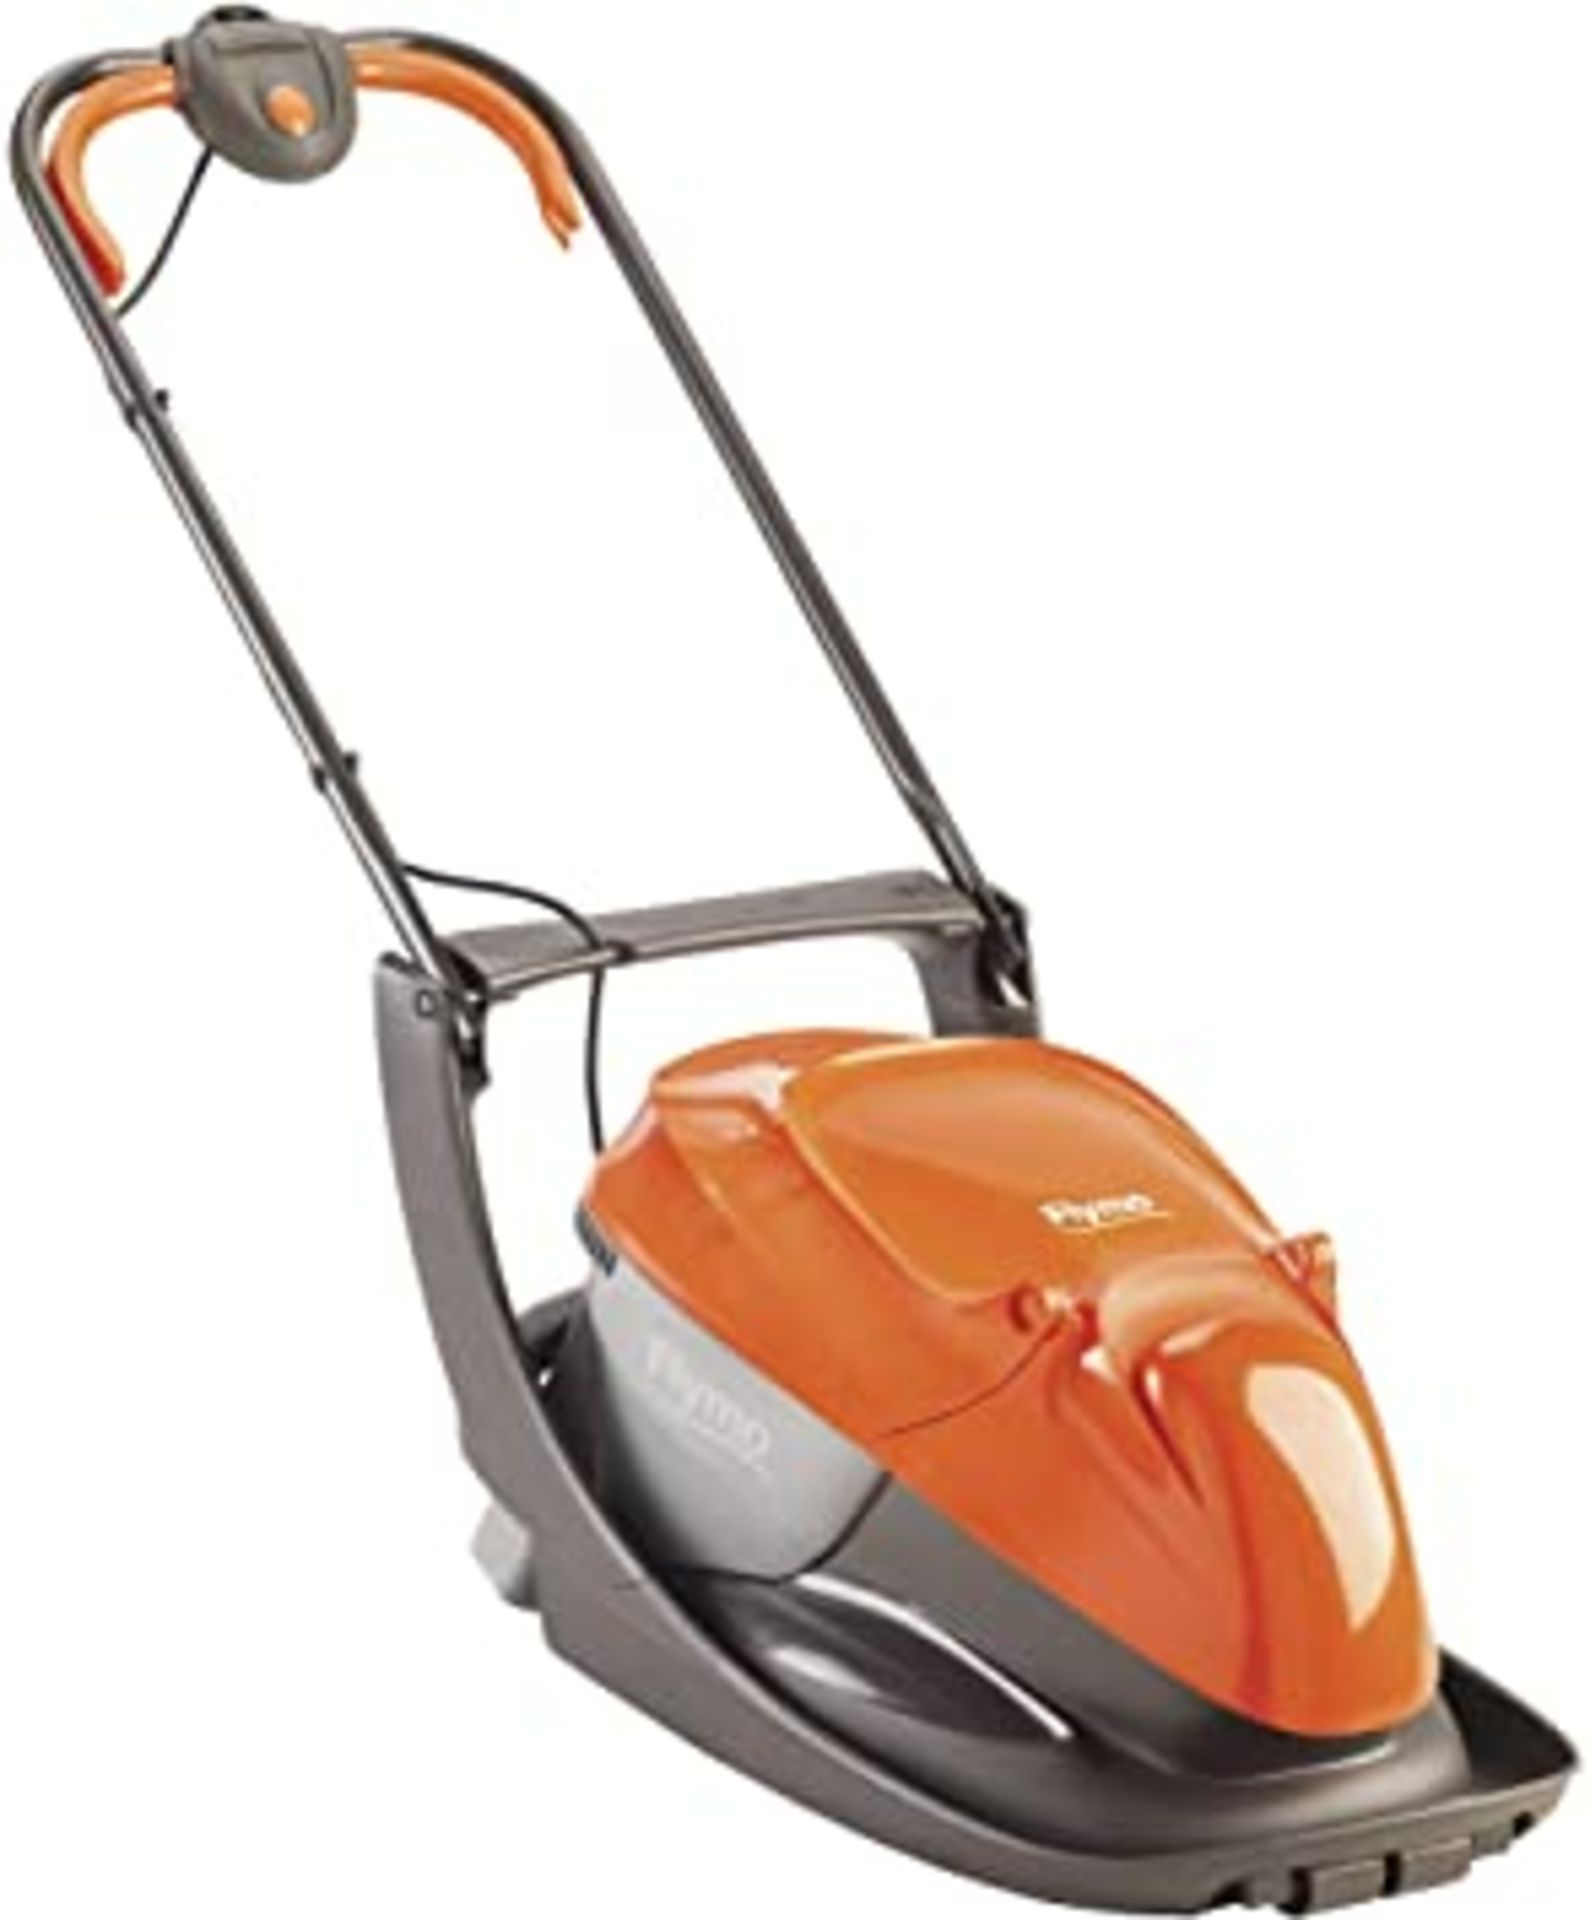 (P7) 2x Flymo EasiGlide 300 Electric Hover Collect Lawnmower RRP £139 Each.